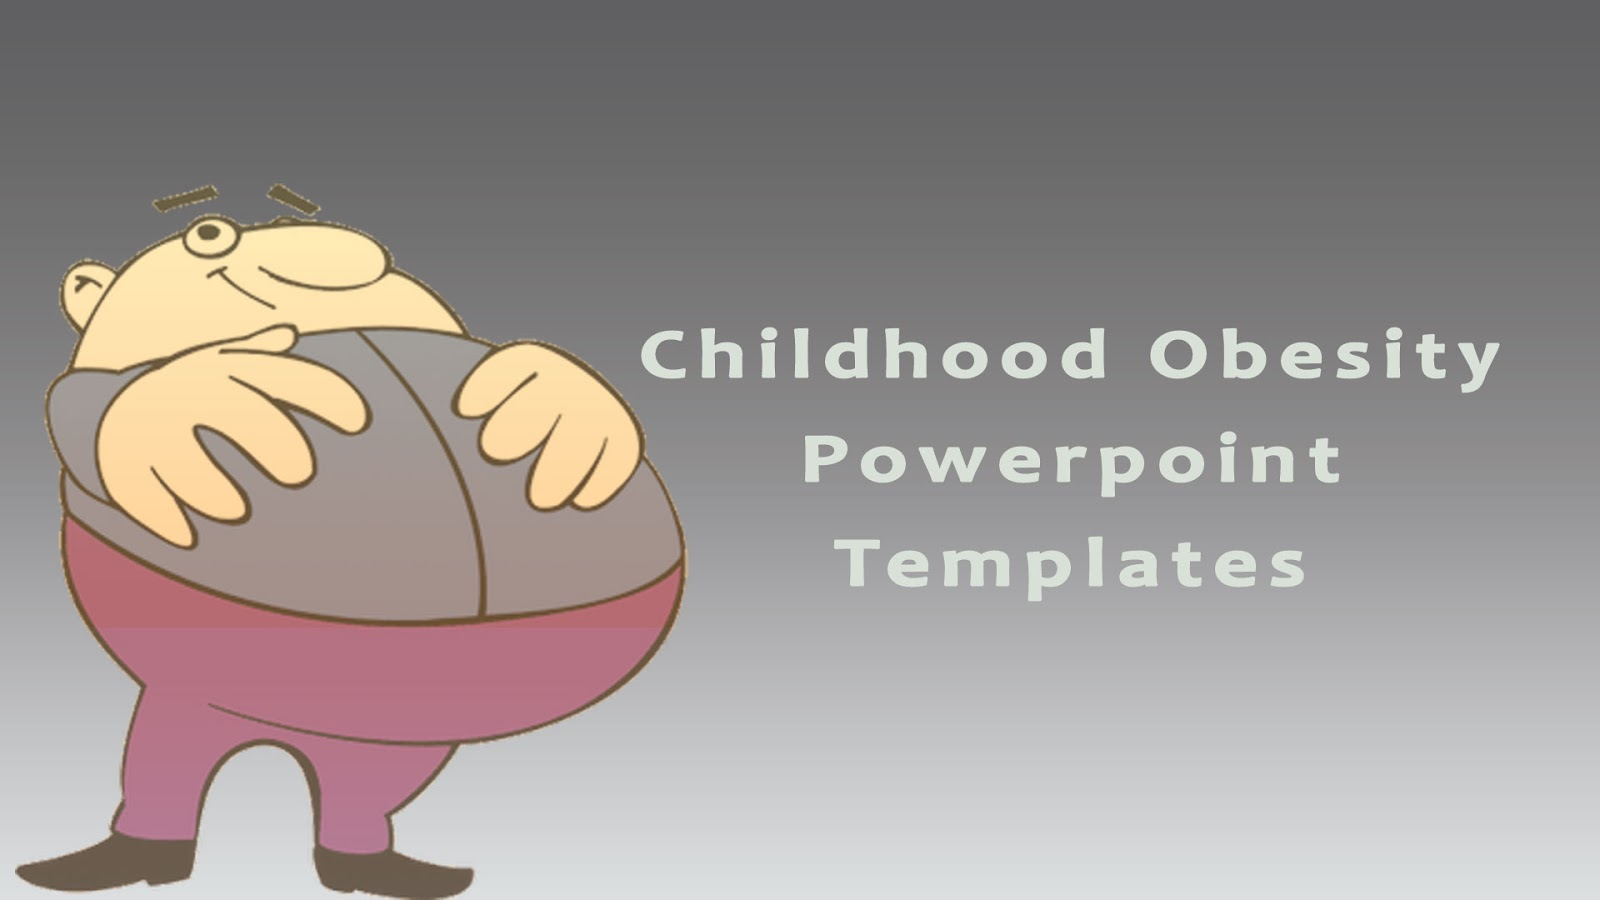 free powerpoint templates themes backgrounds powerpoint With childhood obesity powerpoint templates